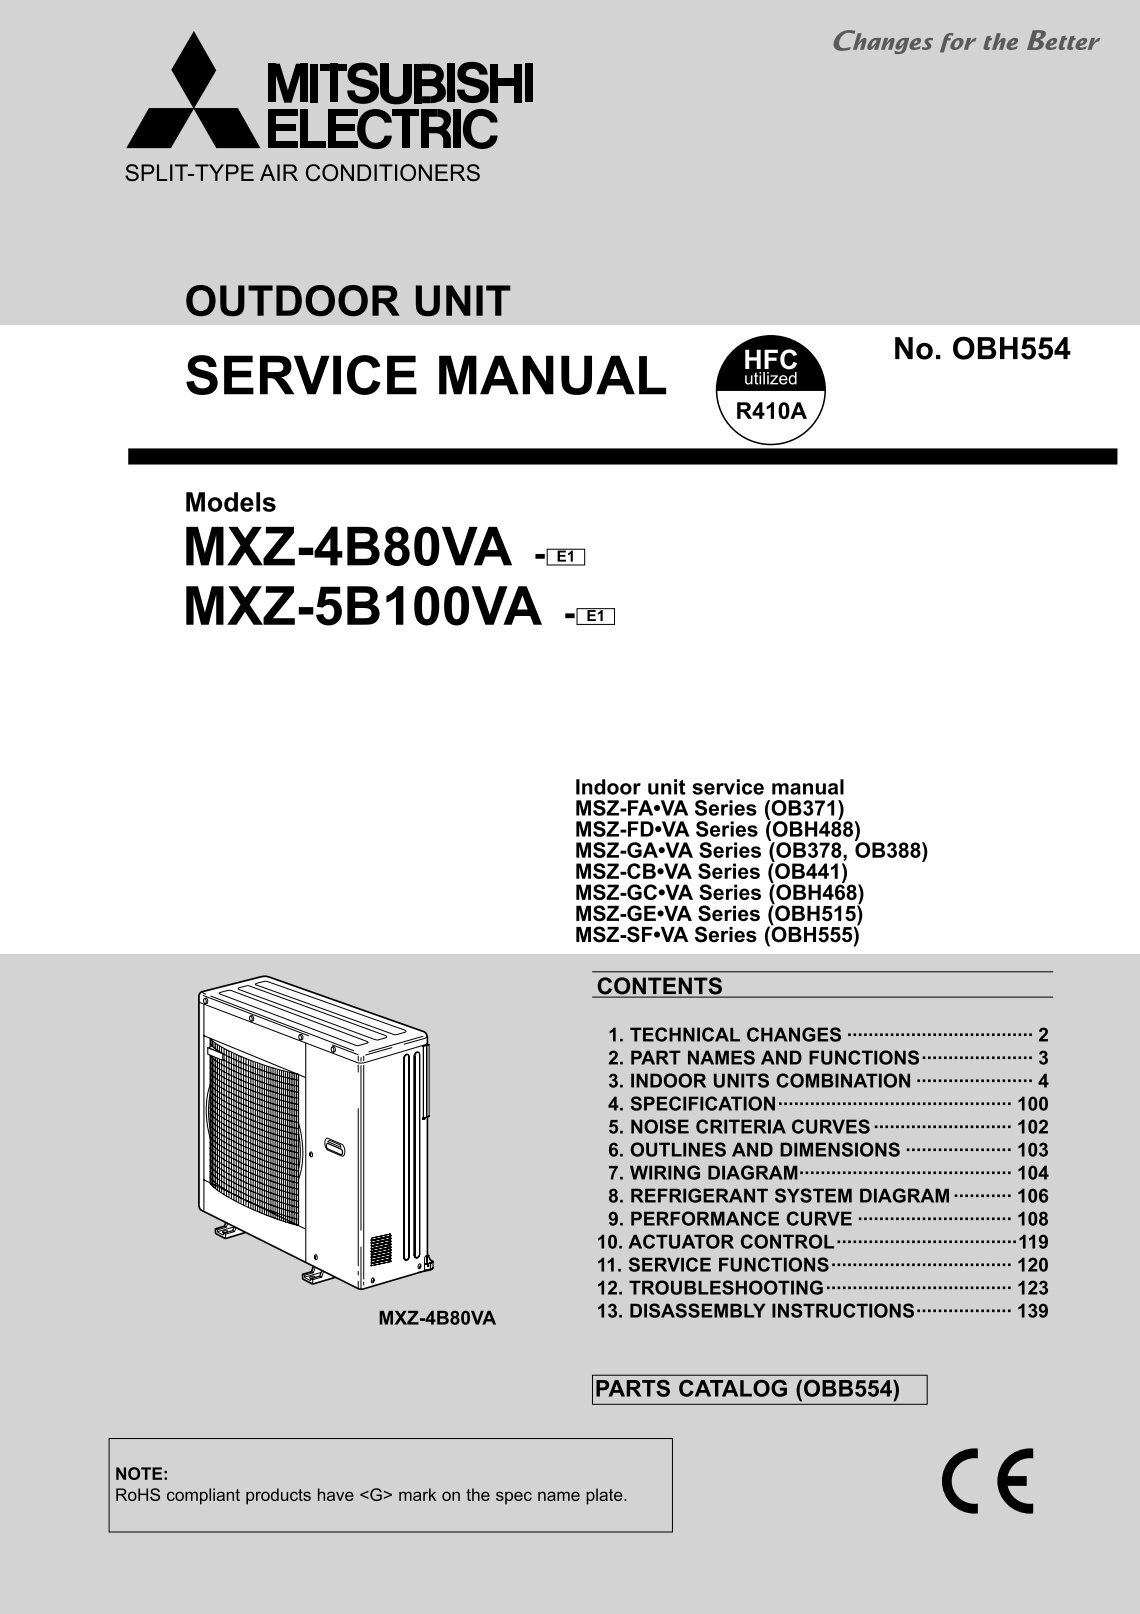 service manual mxz 4b80va e1 mxz 5b100va mitsubishi electric mitsubishi msz wiring diagram mitsubishi schematics and wiring mitsubishi mirage 2000 wiring diagram at pacquiaovsvargaslive.co